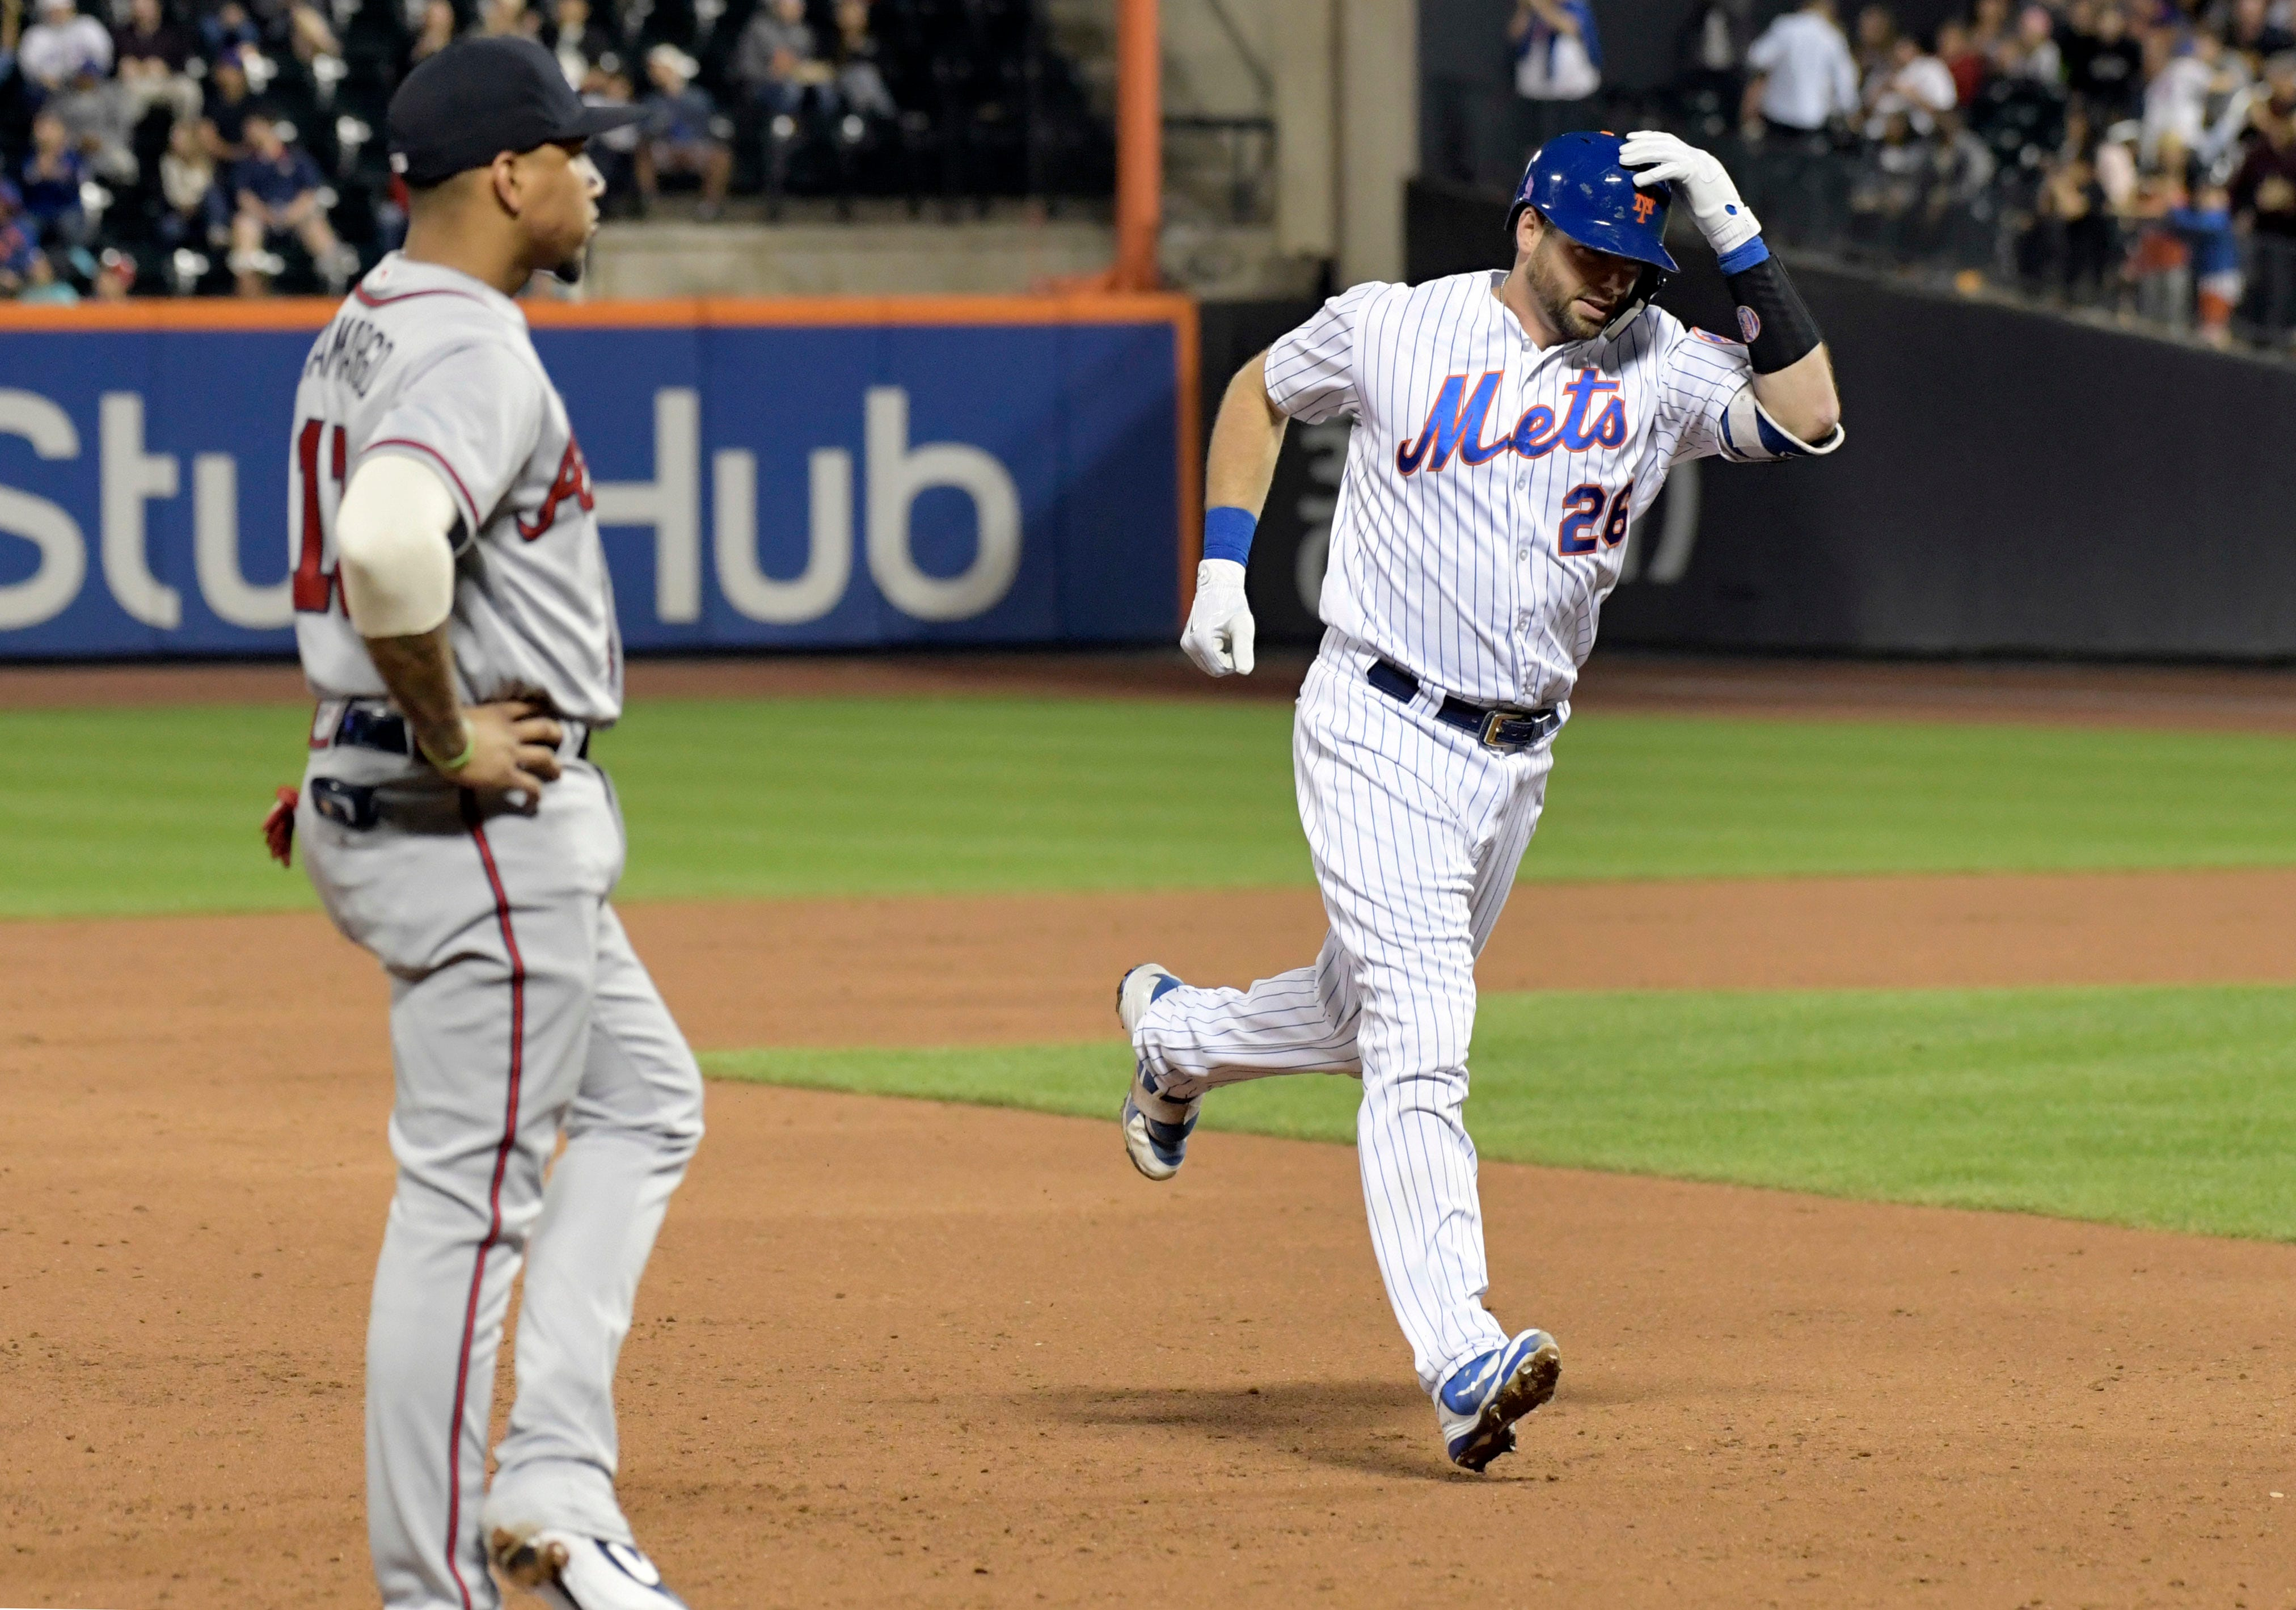 Teheran sharp in playoff audition, Braves fall to Mets 4-1